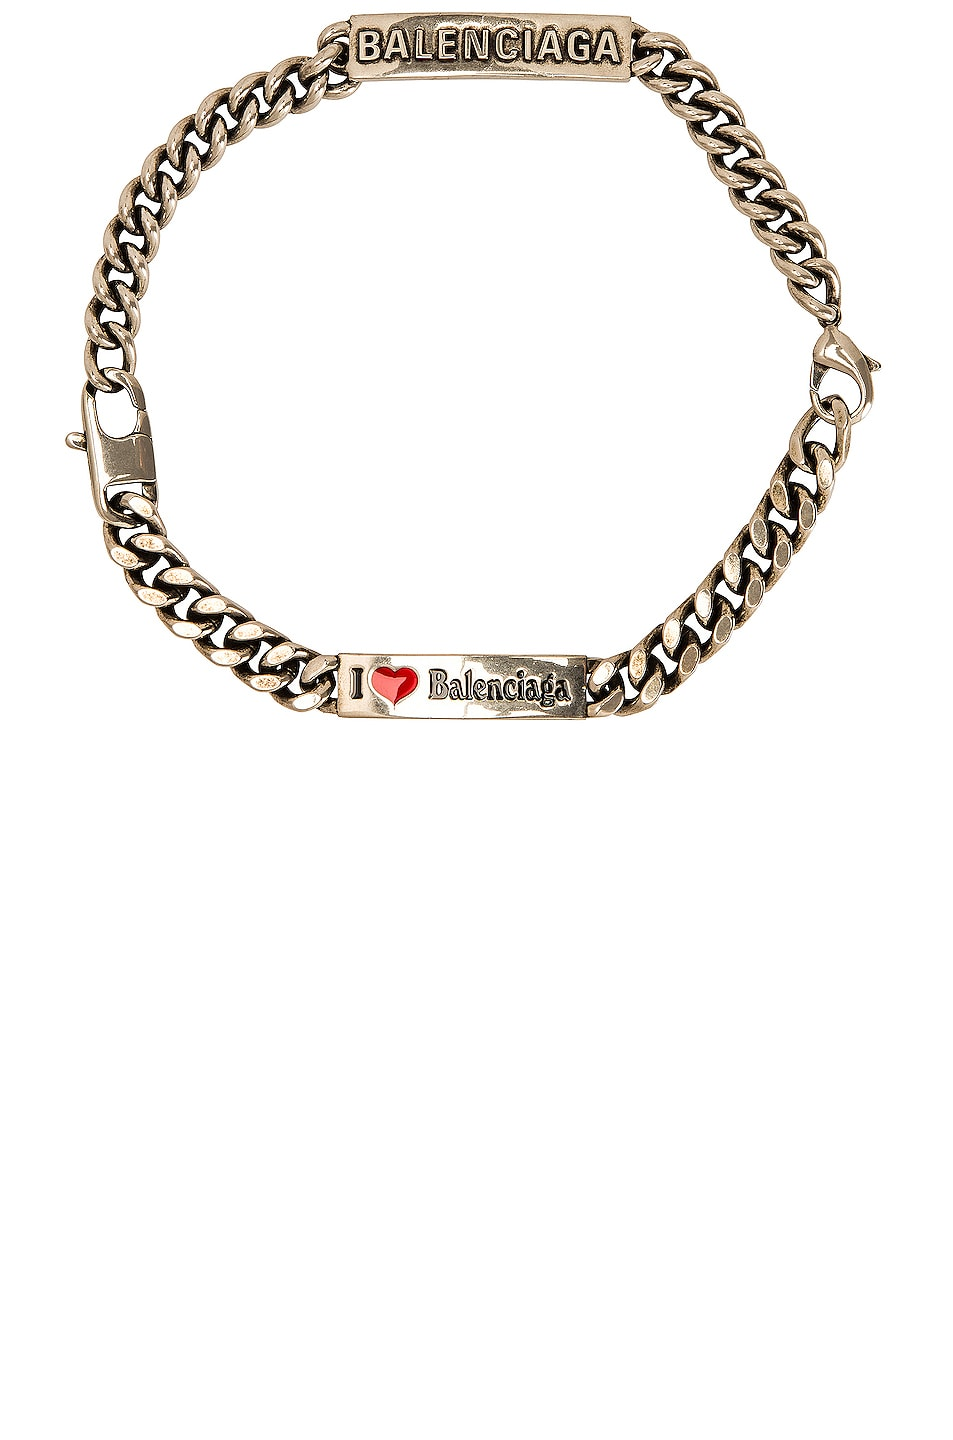 Image 1 of Balenciaga Plate Choker Bracelet Necklace in Brass & Antique Silver